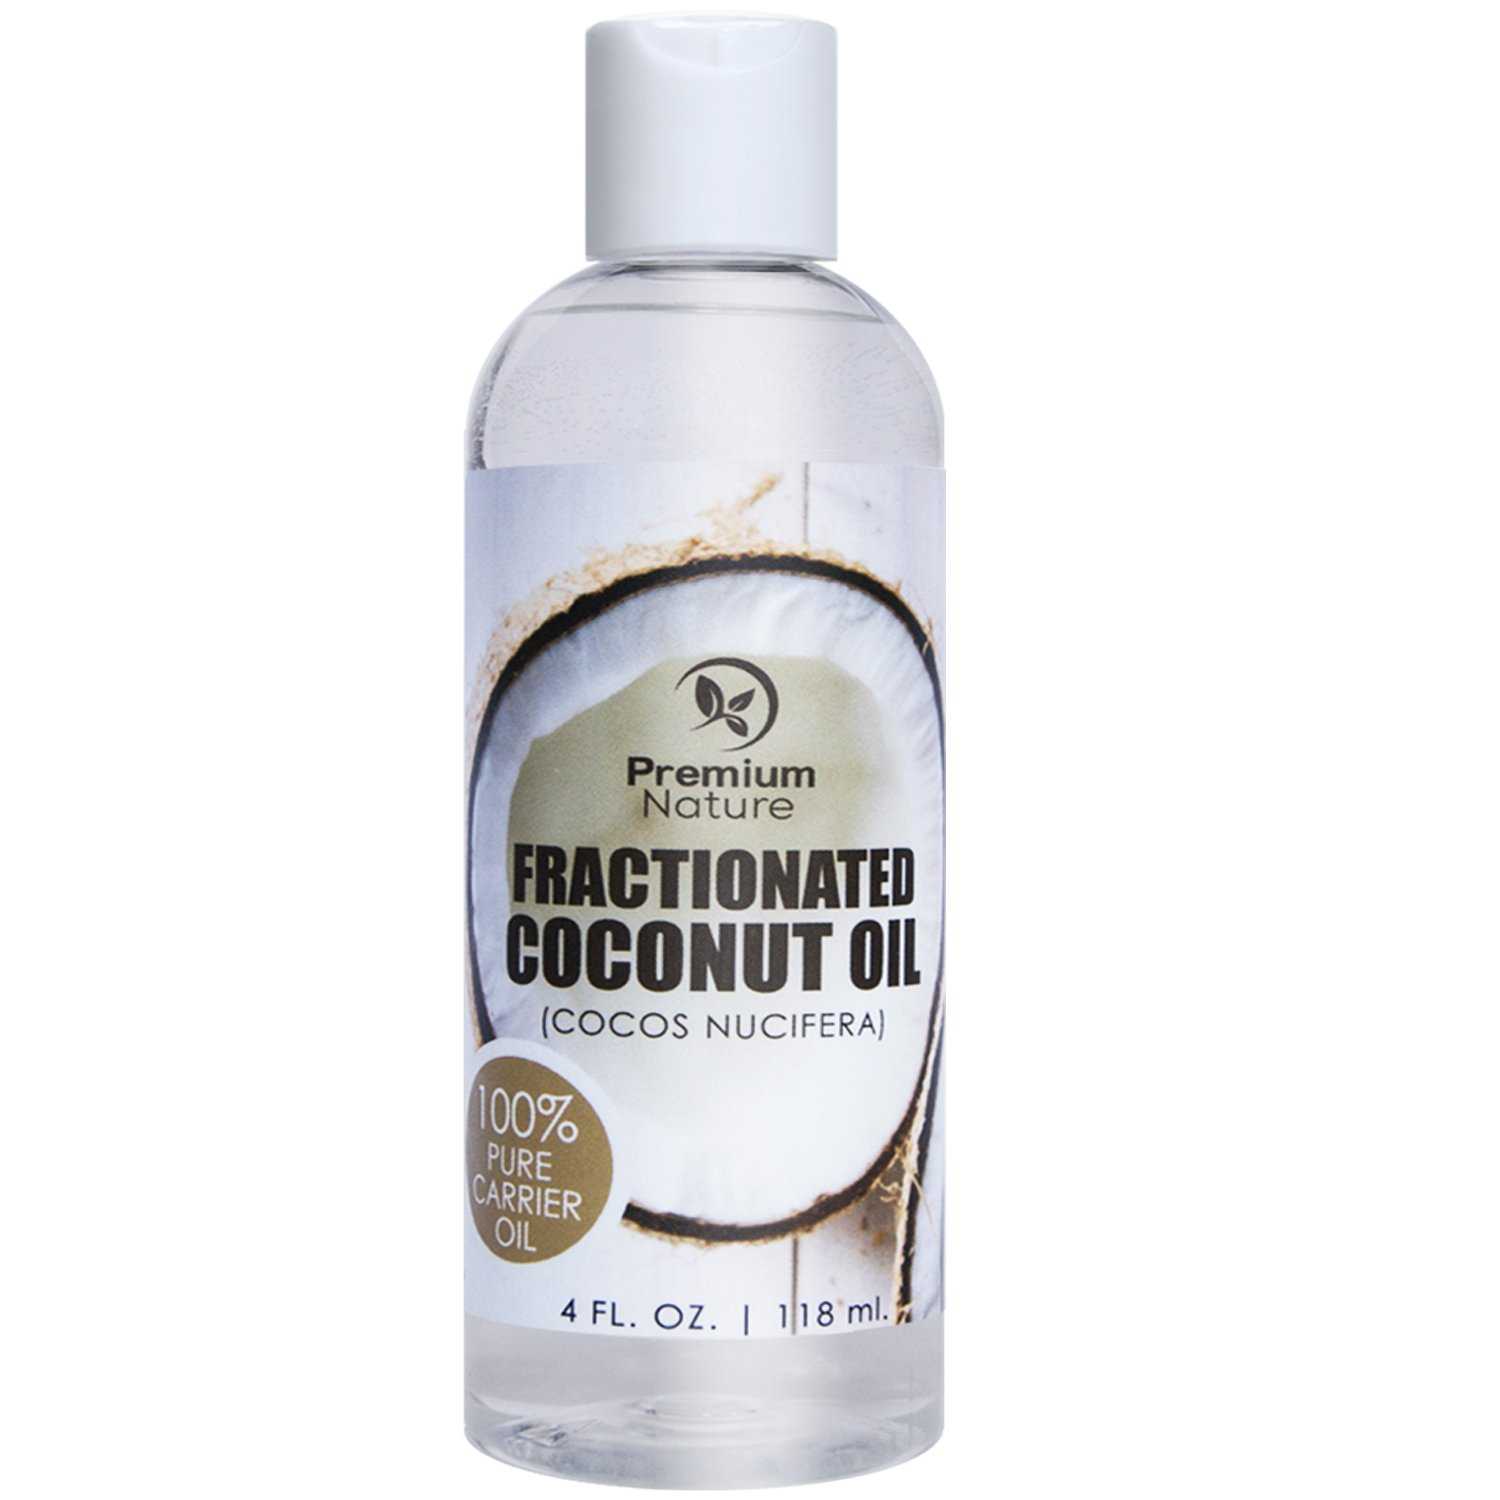 Fractionated Coconut Oil Natural Carrier Oil - 4 oz Nourishes Skin For Face & Body Moisturizes Repairs Damaged Hair - Antibacterial & Antifungal Properties Premium Nature